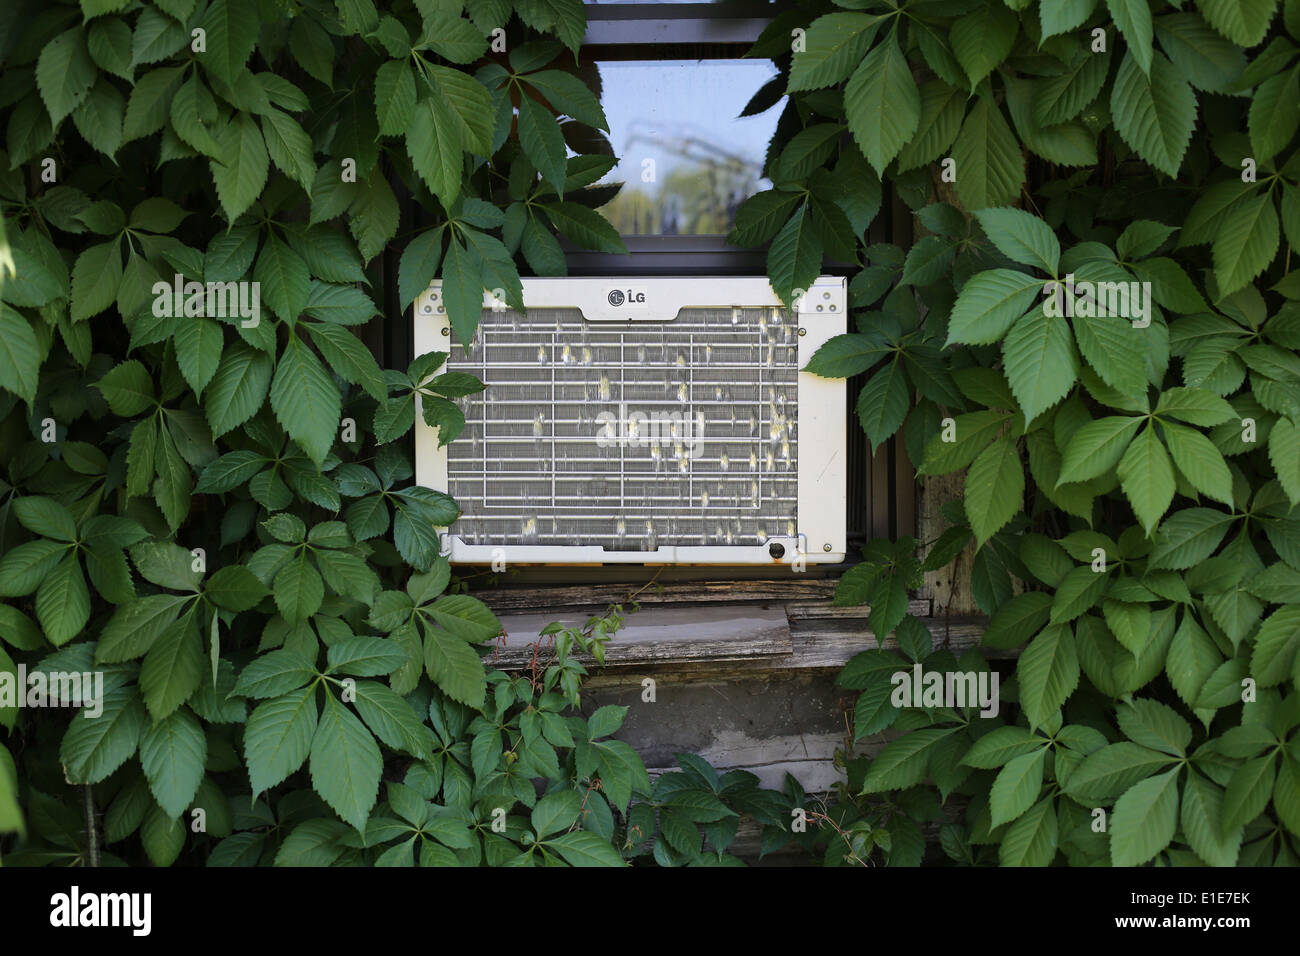 An old window unit air conditioner, surrounded by vines and leaves. - Stock Image